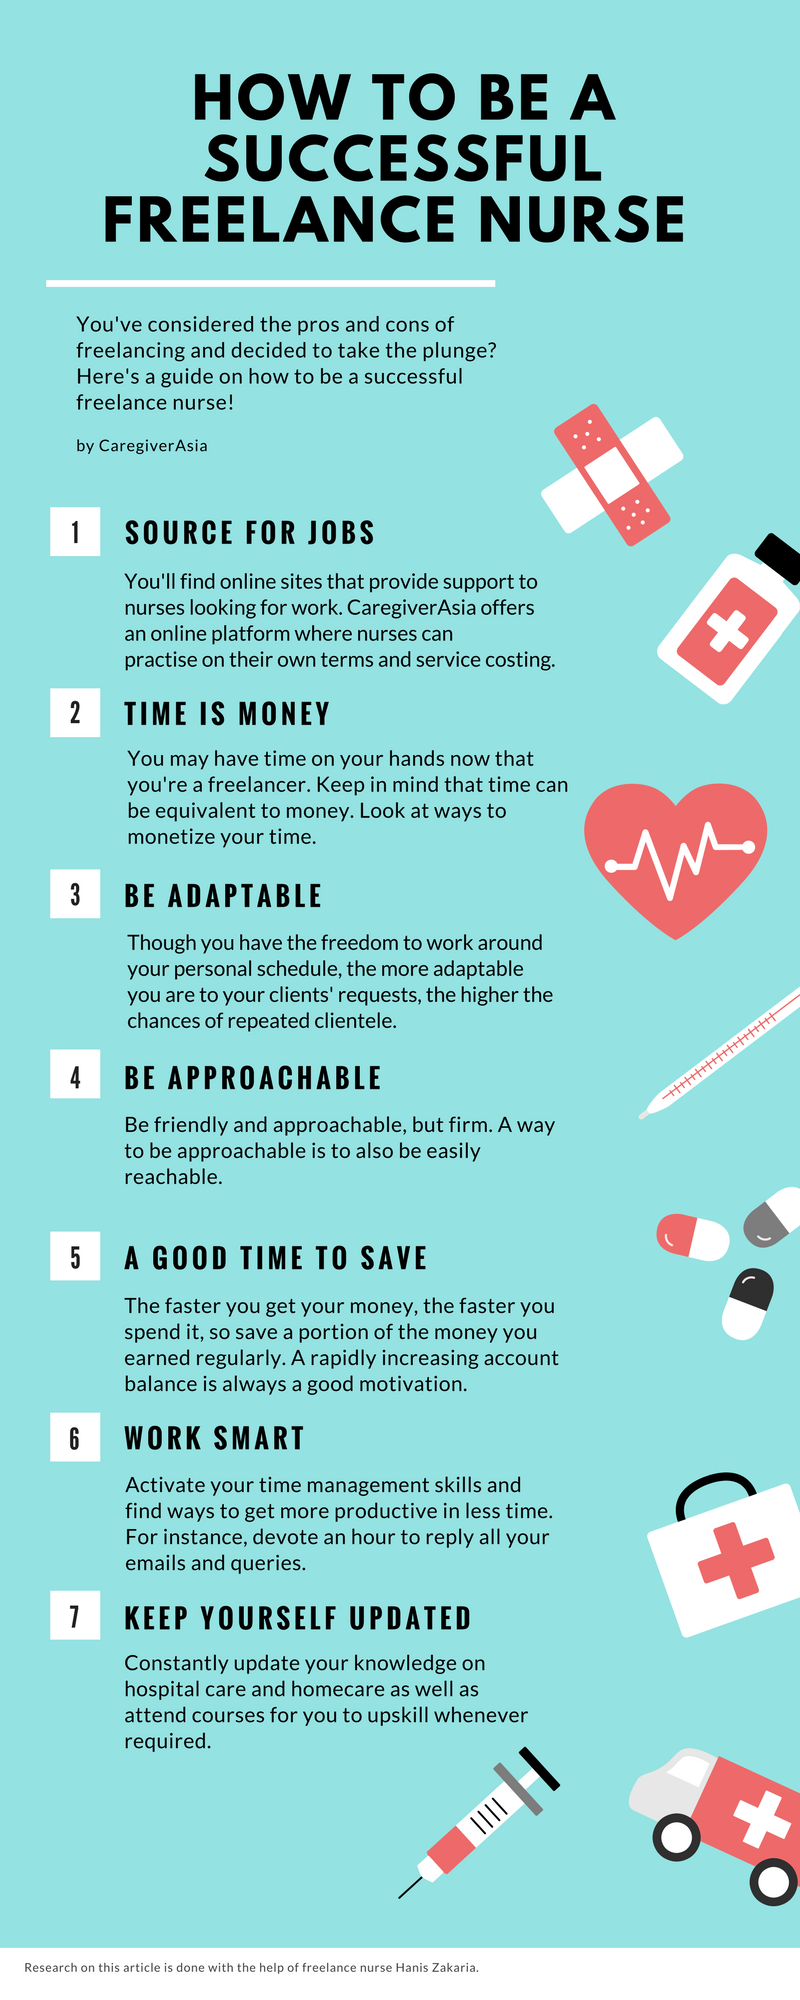 How to be a successful freelance nurse?